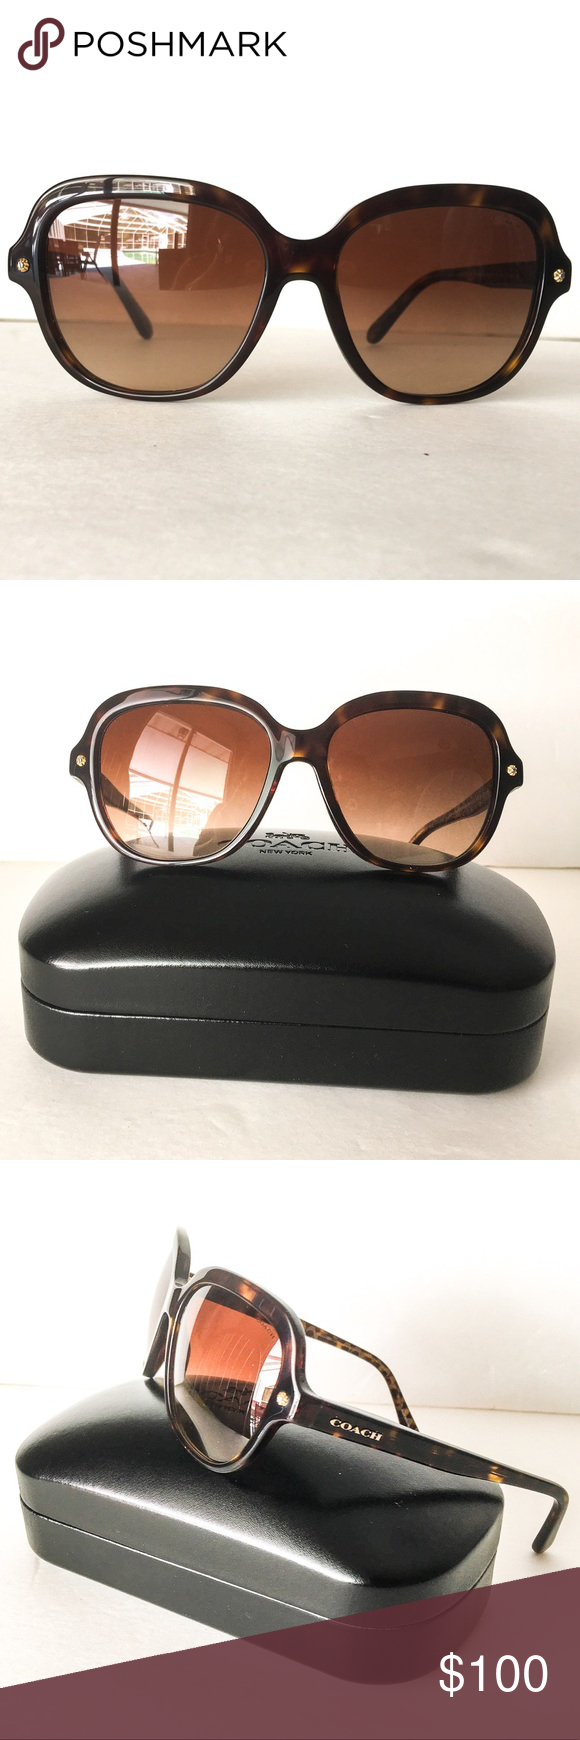 459ebe61116 Brand New Coach Sunglasses 😎 Look your best everyday with these ultra-chic  Coach